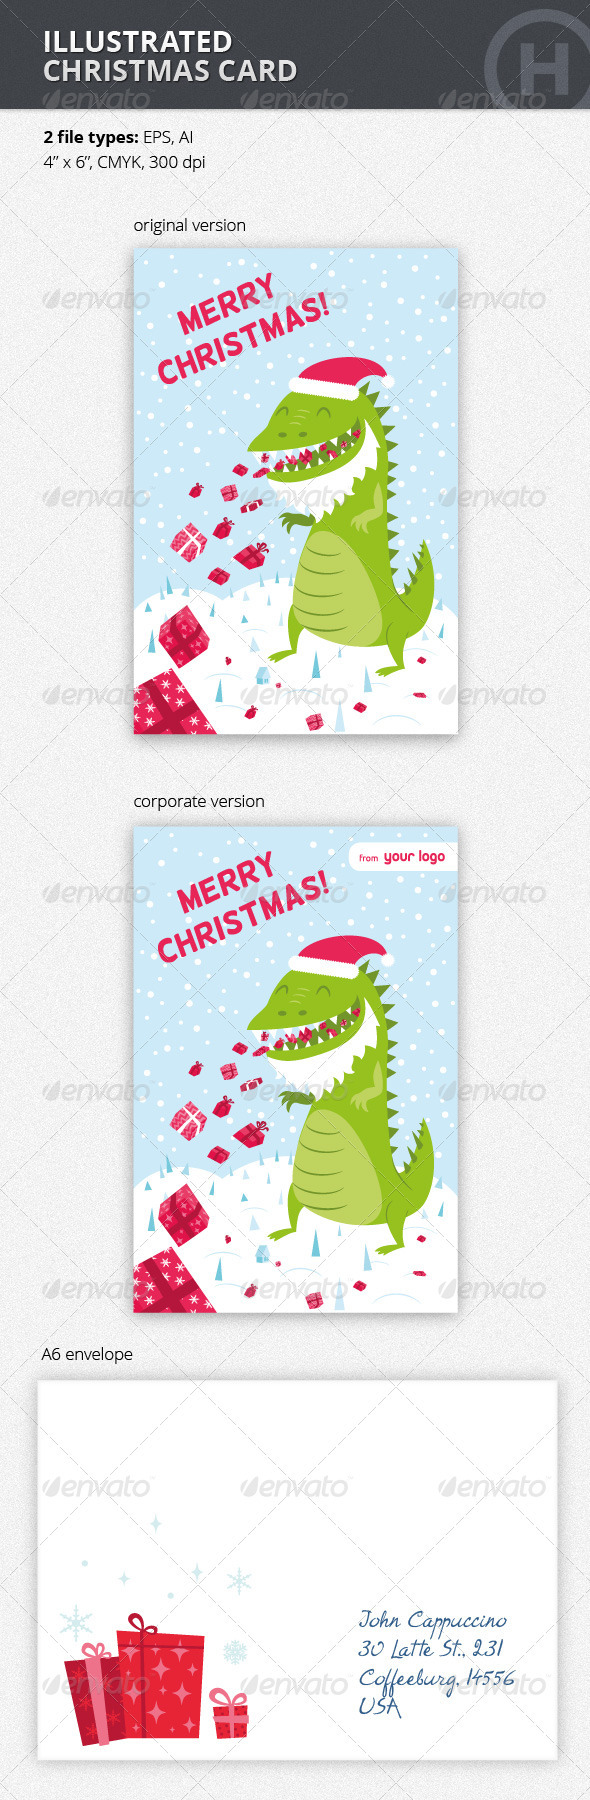 Illustrated Christmas Card with Godzilla